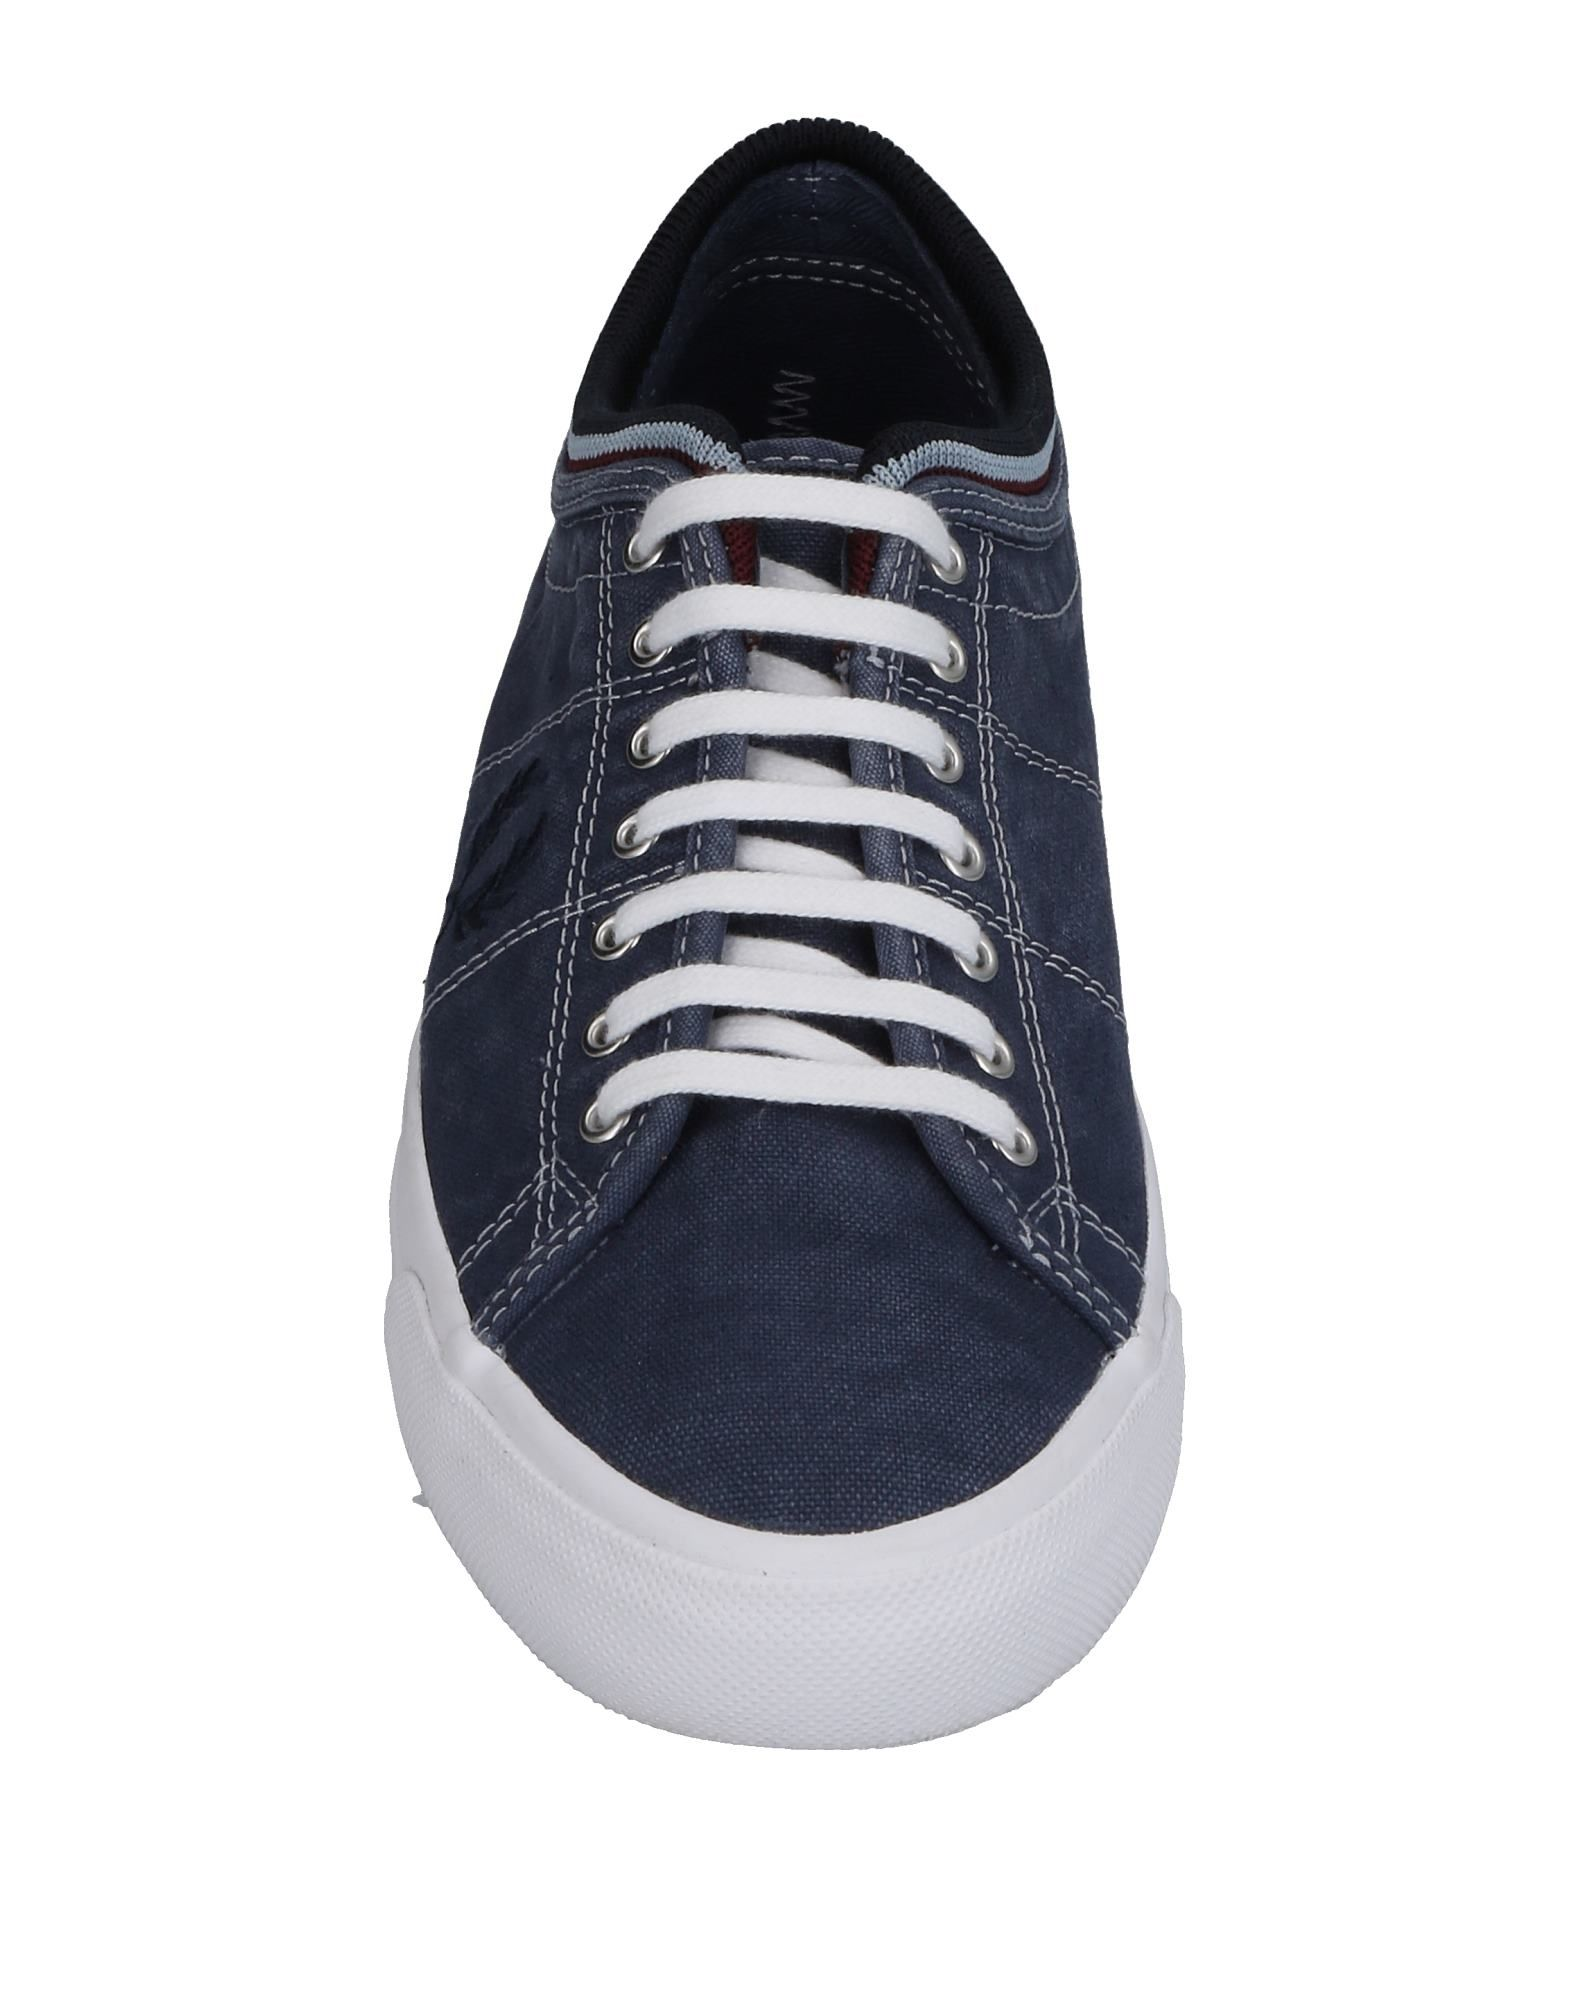 Sneakers Fred Perry Homme - Sneakers Fred Perry sur